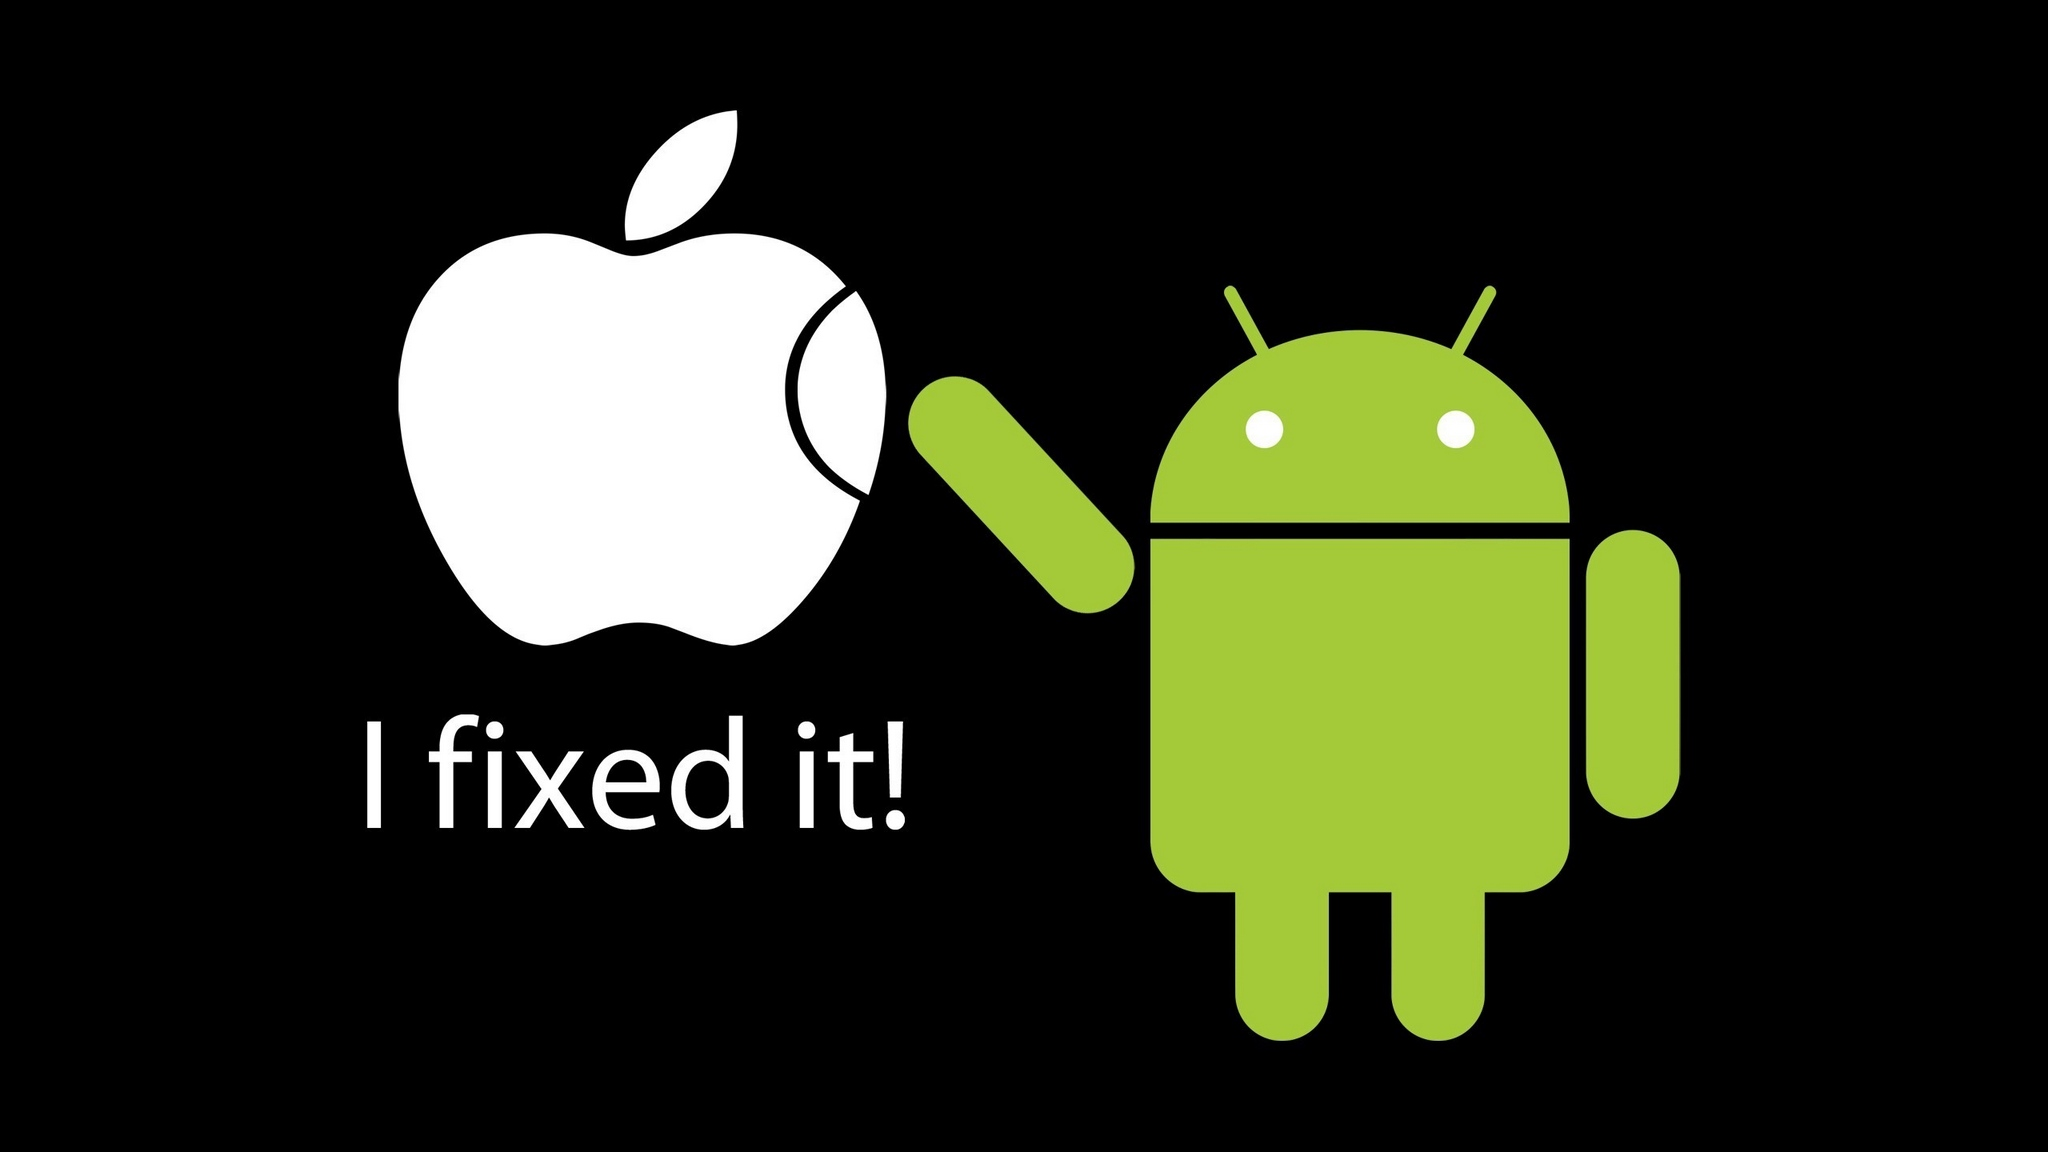 1920x1080, Wallpapers For > Android Vs Apple Hd Wallpaper - Fixed It Apple Android - HD Wallpaper